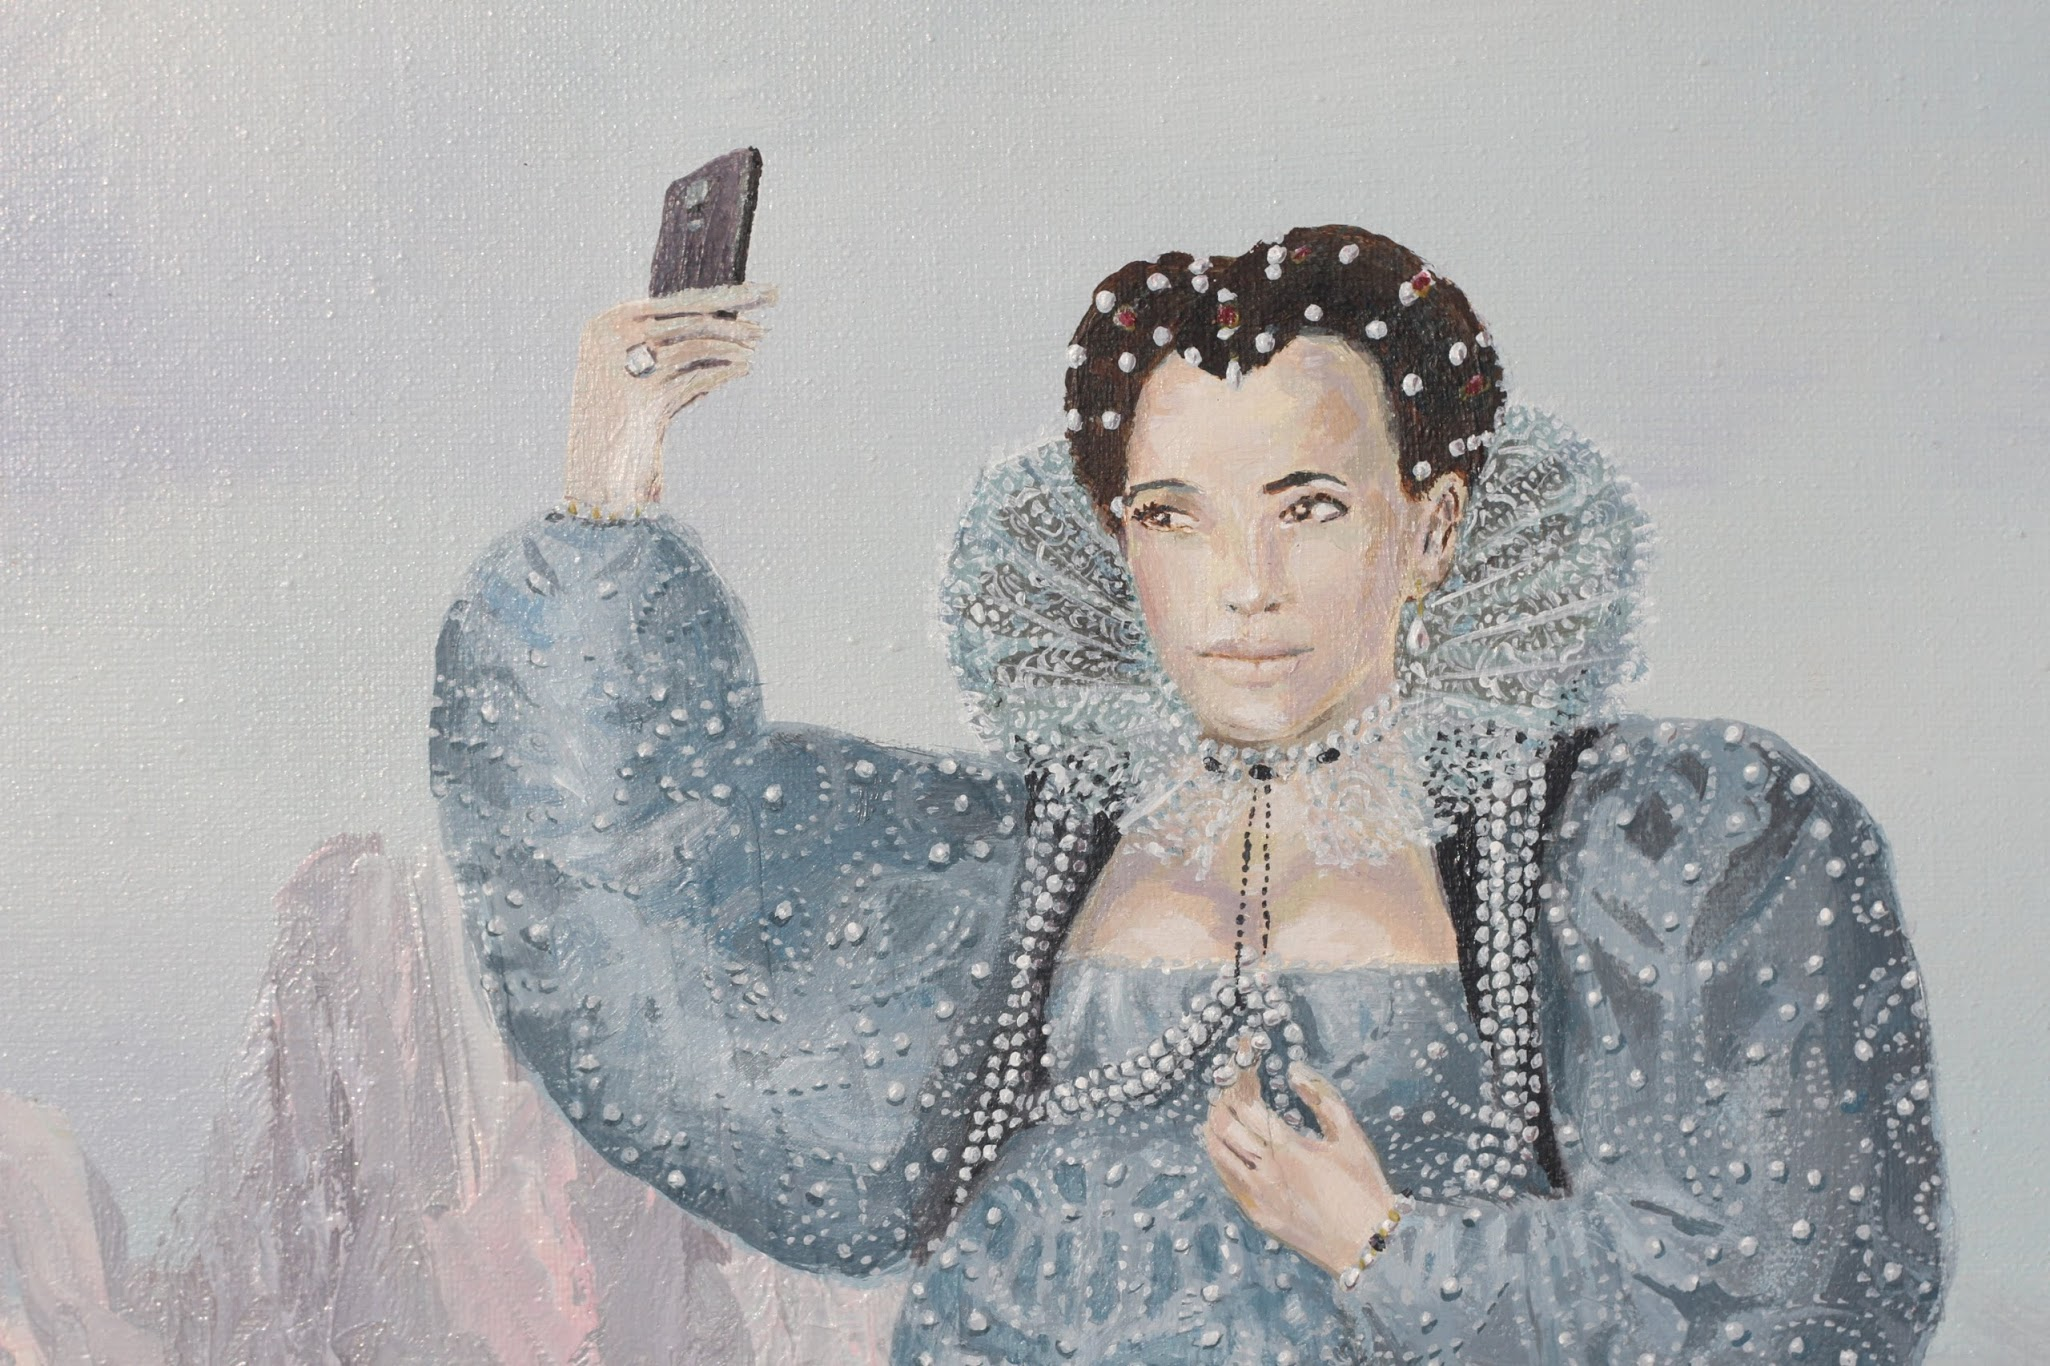 Queen Kim Kardashian Selfie, English Royals in the Desert, Acrylic on Mixed Medium